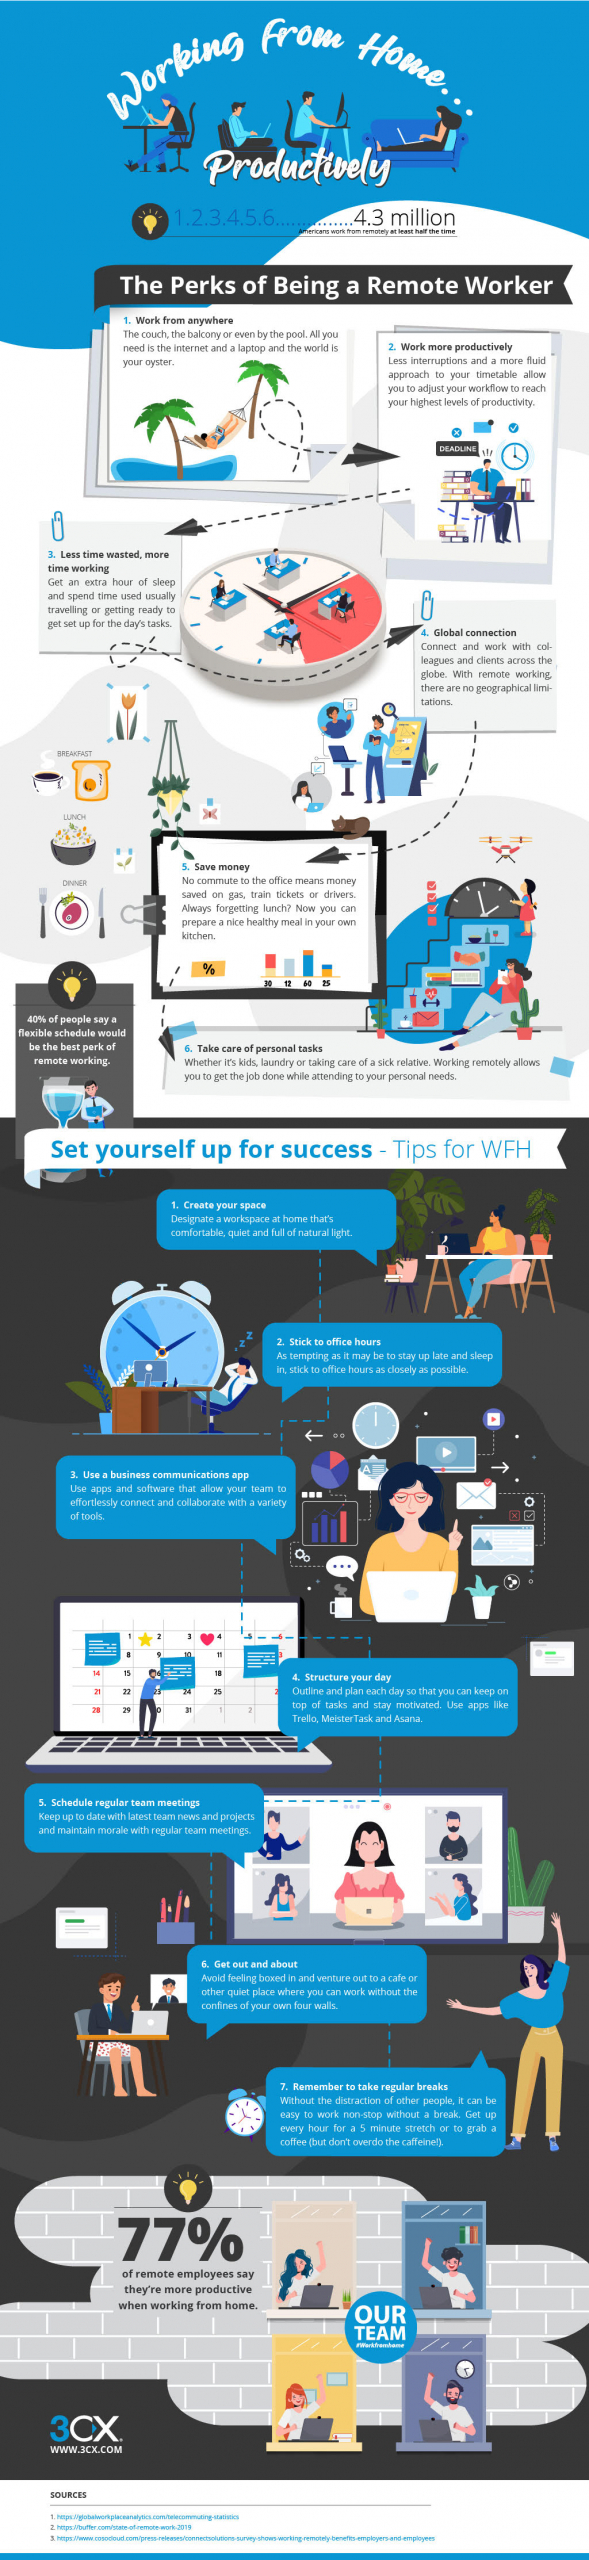 tips for working remotely infographic